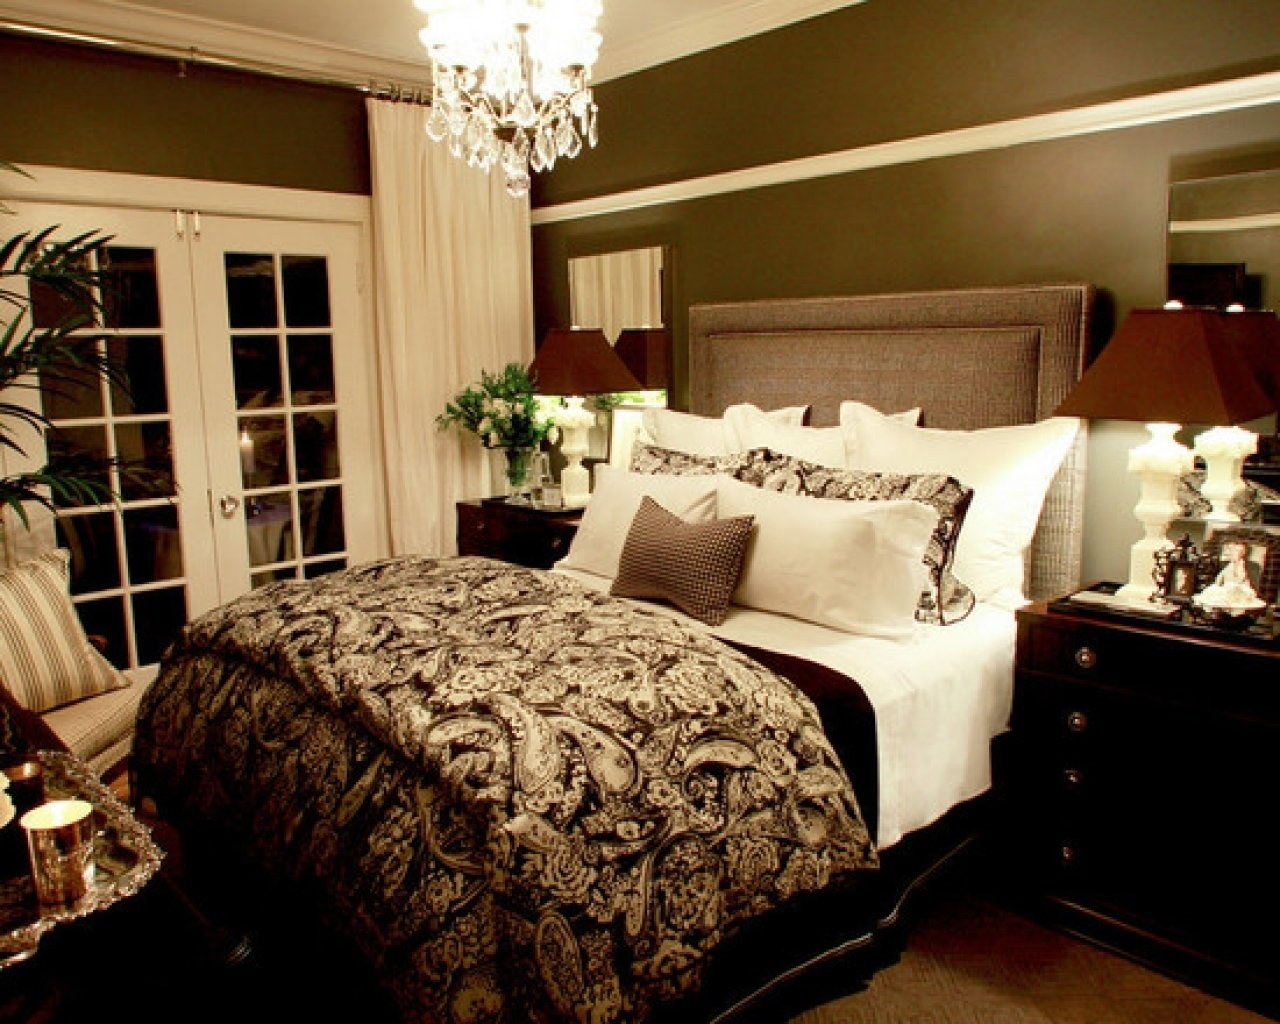 10 Fantastic Romantic Ideas For Couples At Home best artistic rtic bedroom designs for couples 2017 plus romantic 2020